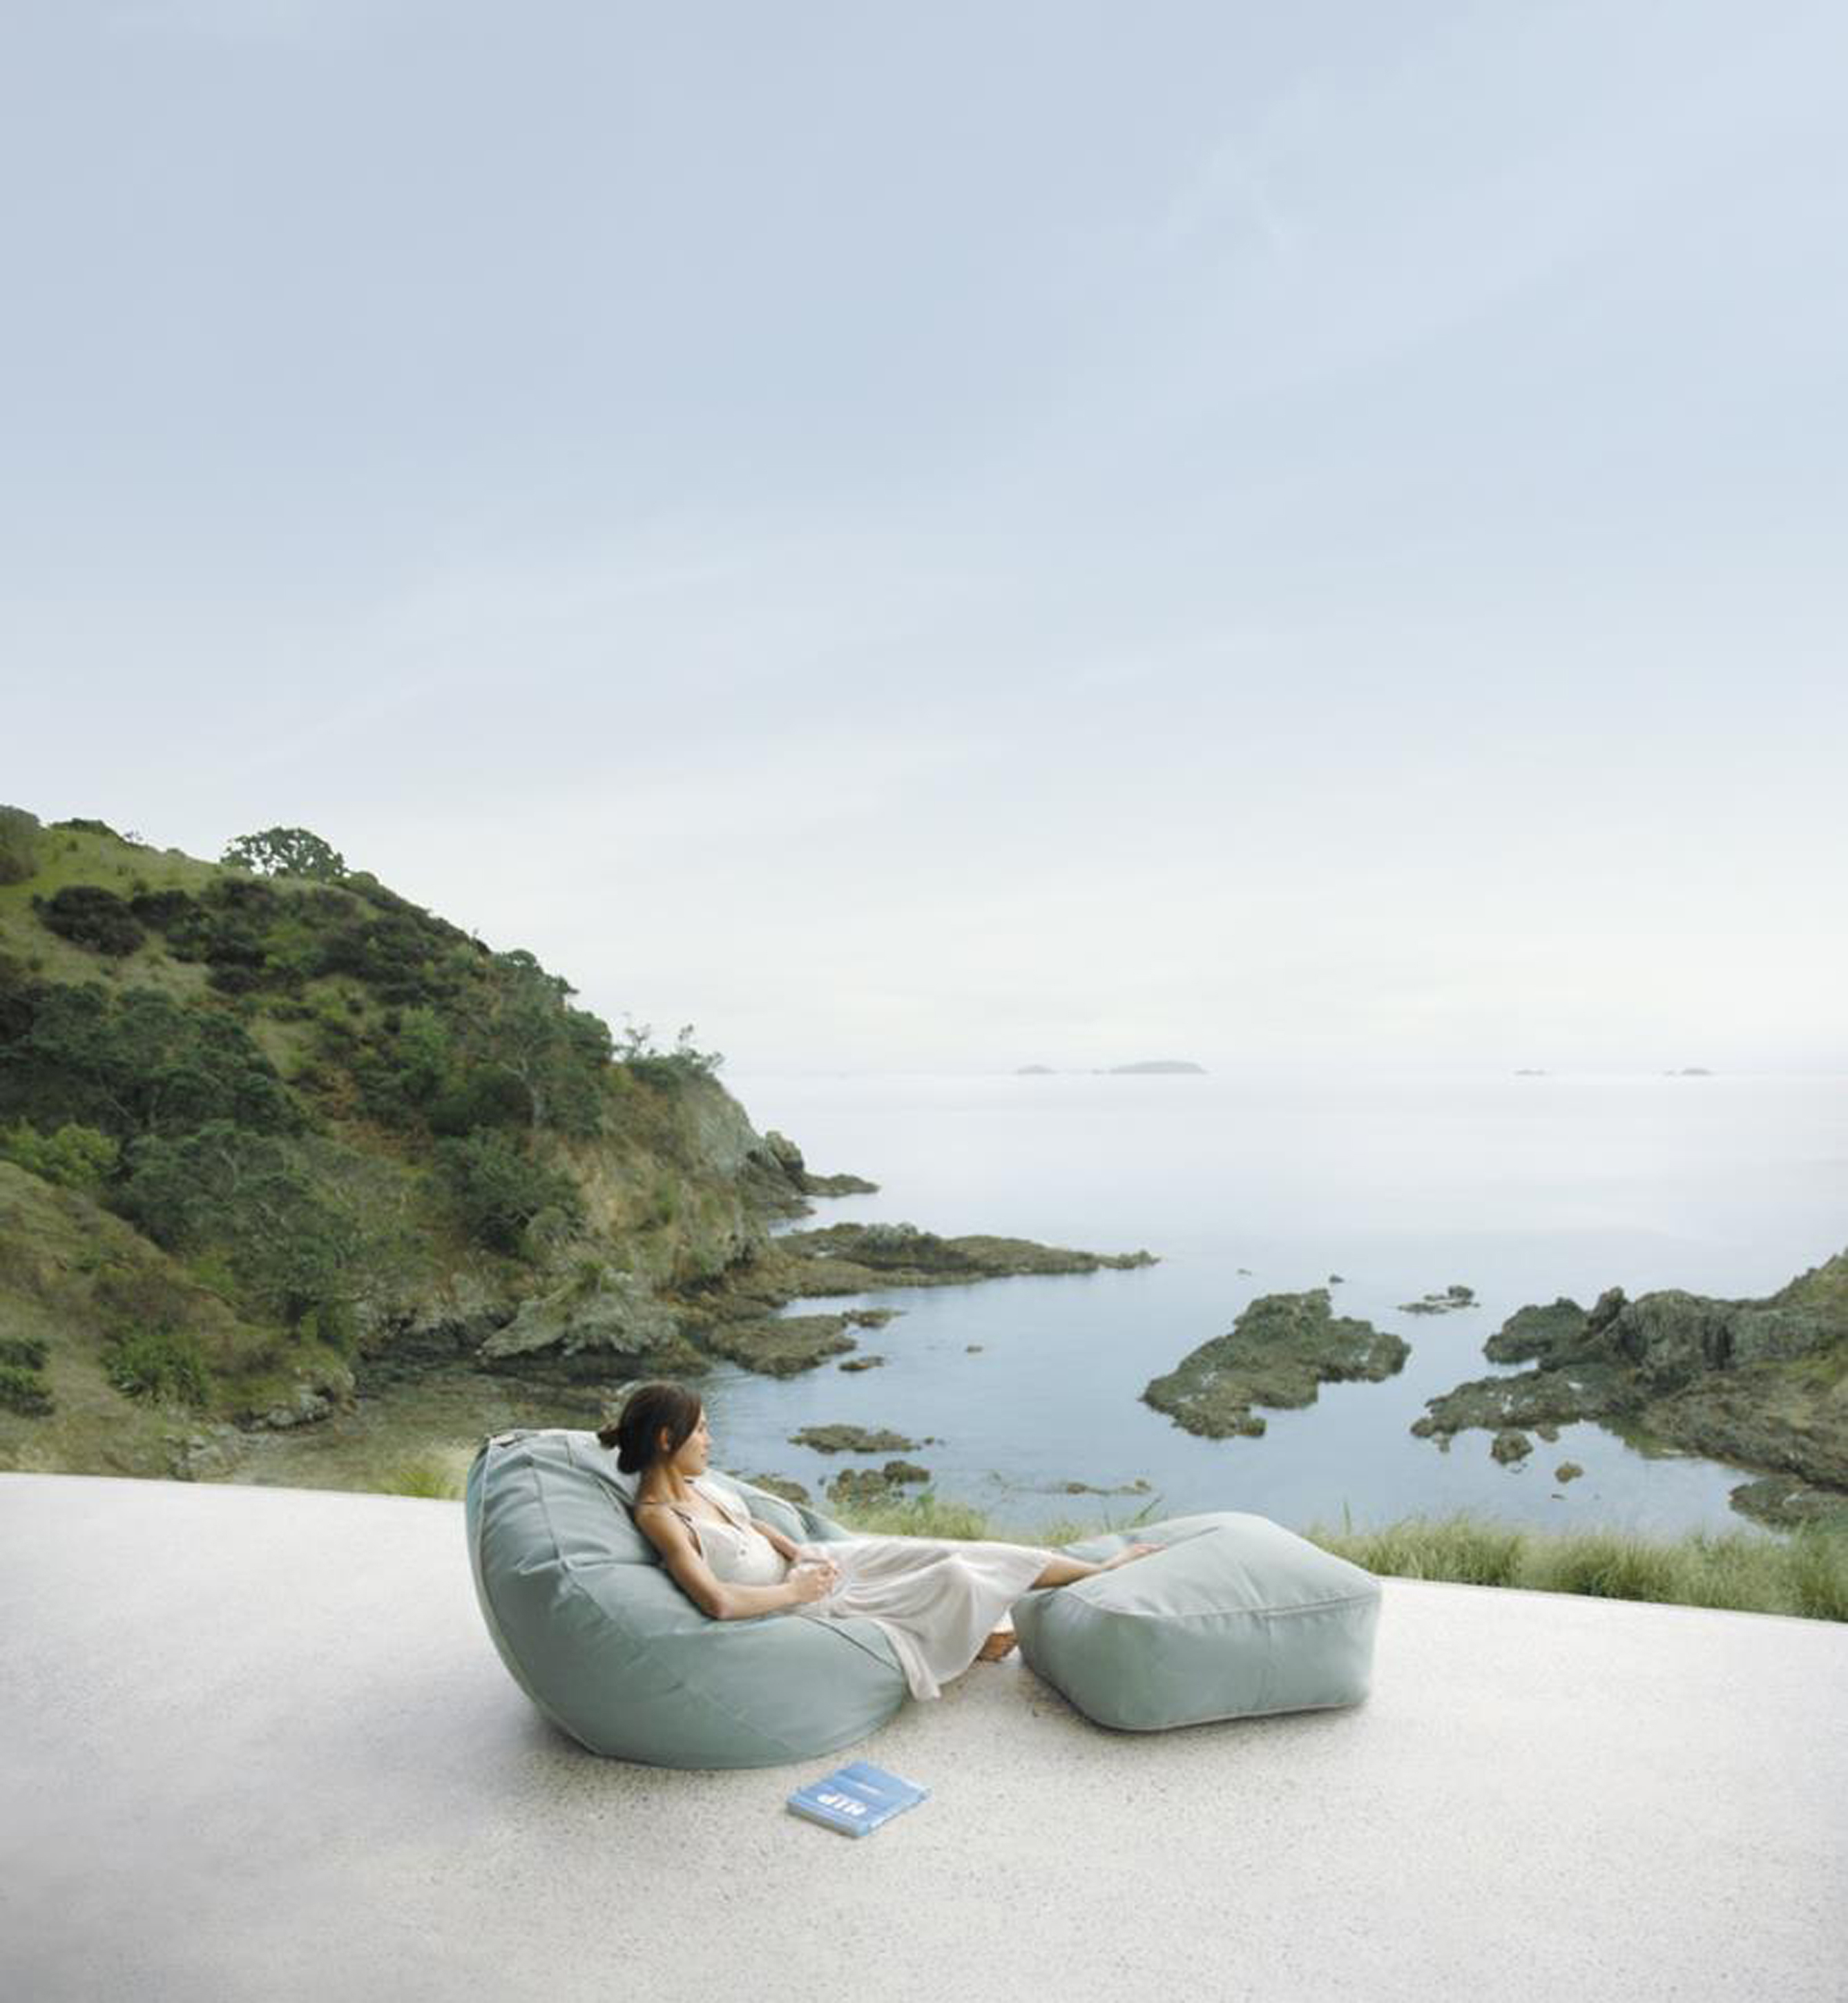 Luxury Contemporary Outdoor Bean Chair Design Idea In Light Blue Great Contemporary Outdoor Ideas (Image 55 of 123)